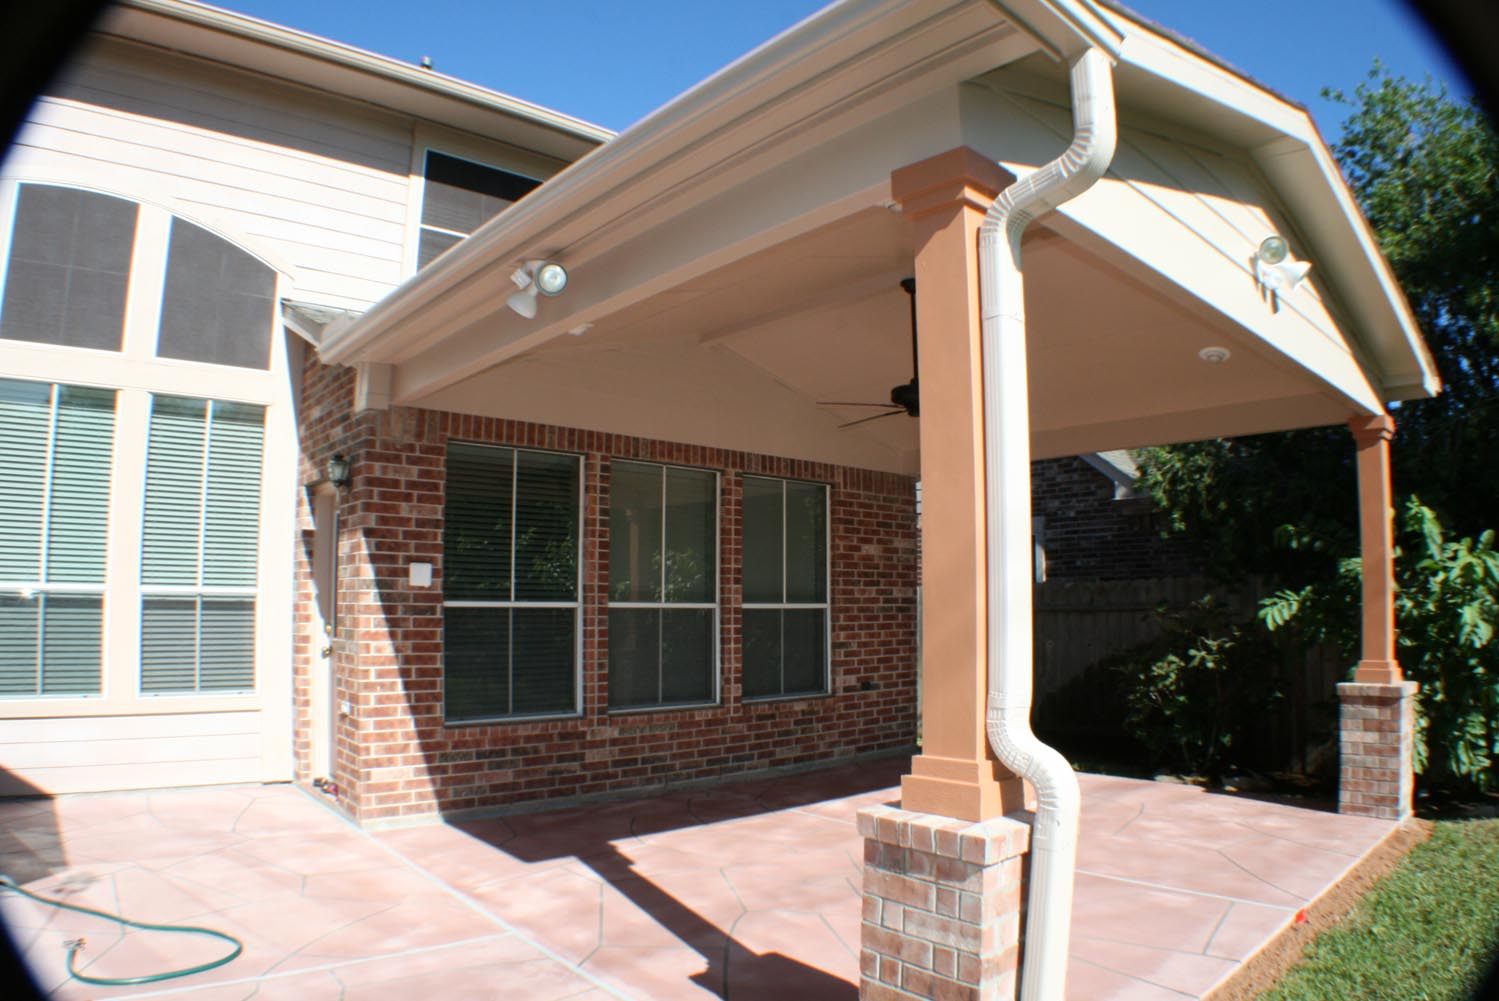 Patio Cover in Houston - HHI Patio Covers on Patio Cover Ideas Wood id=87630